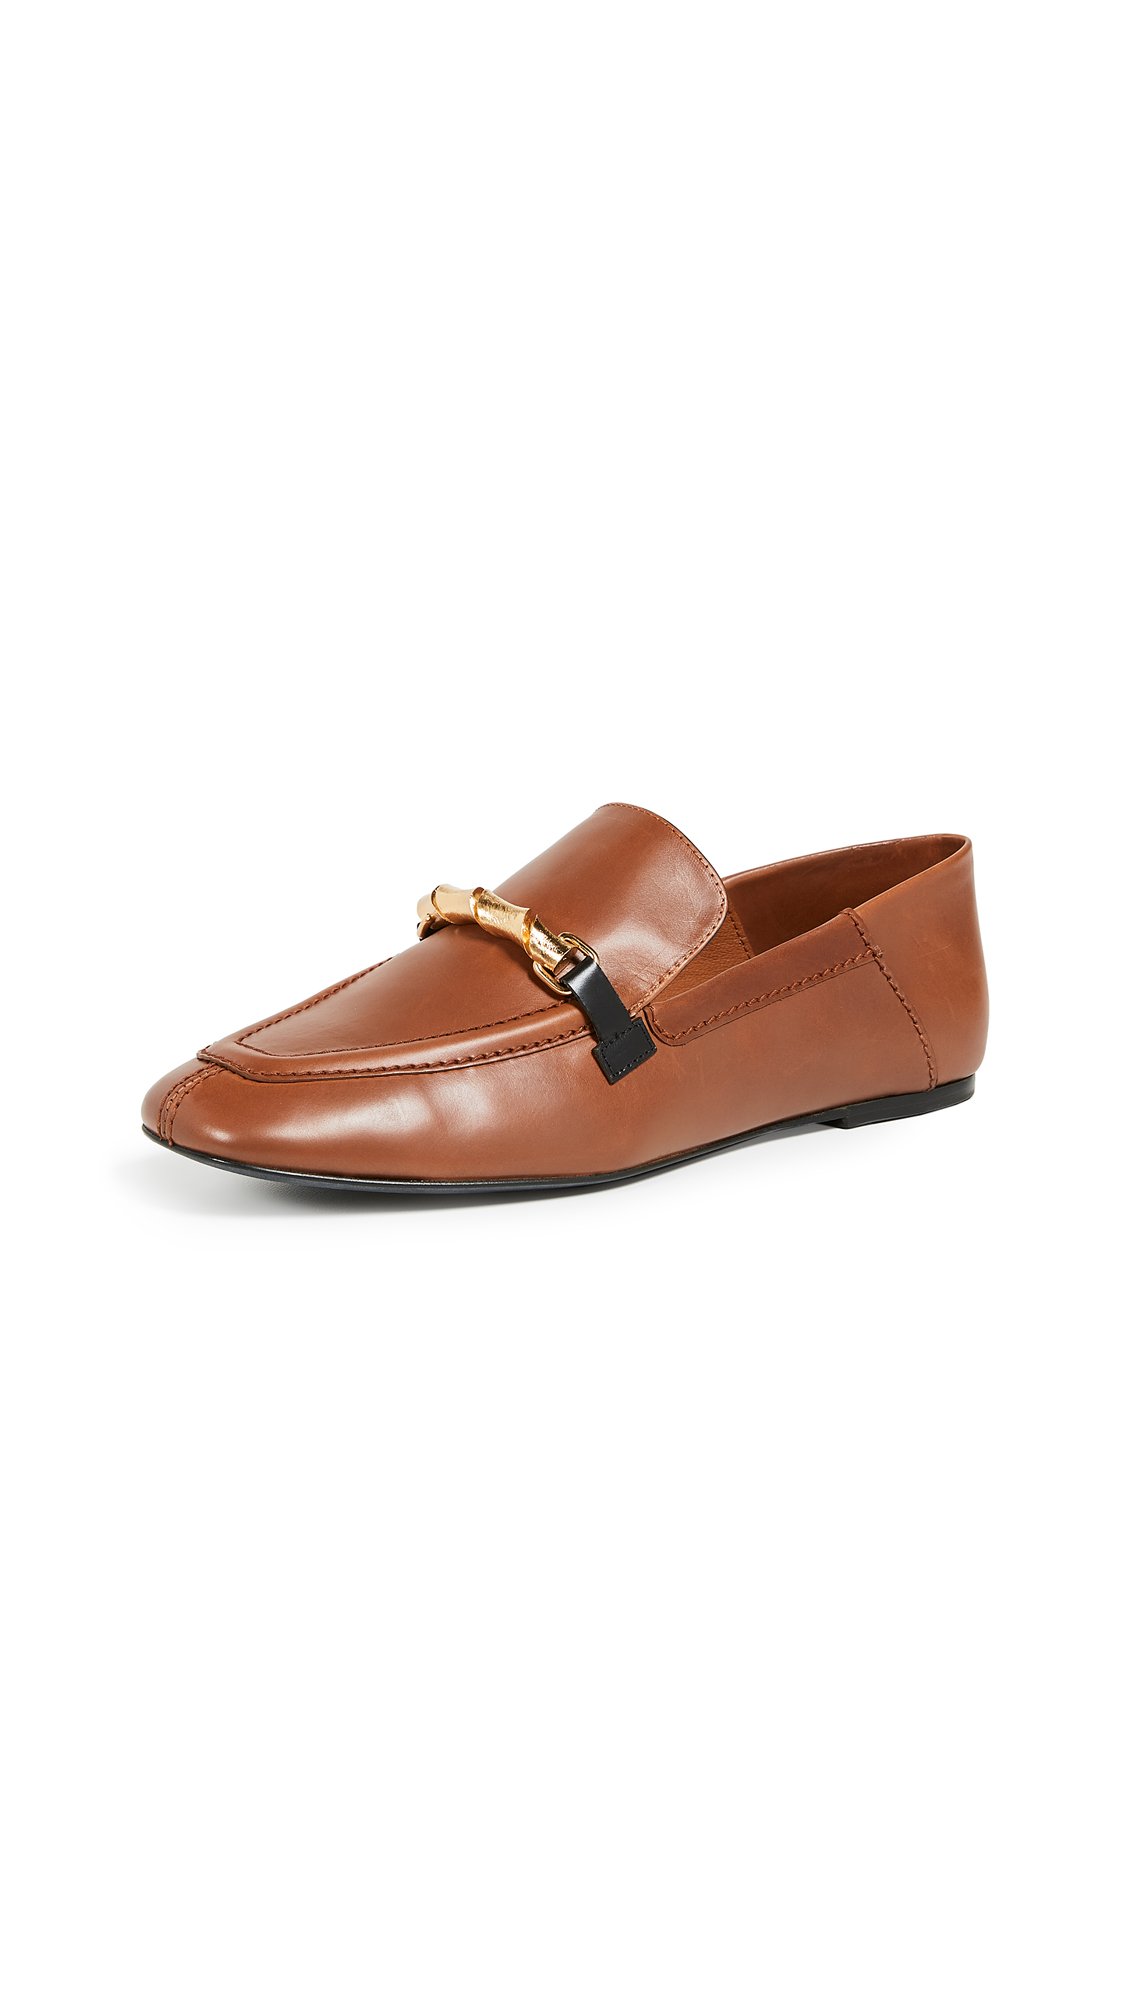 Joseph Bentley Loafers - Brown